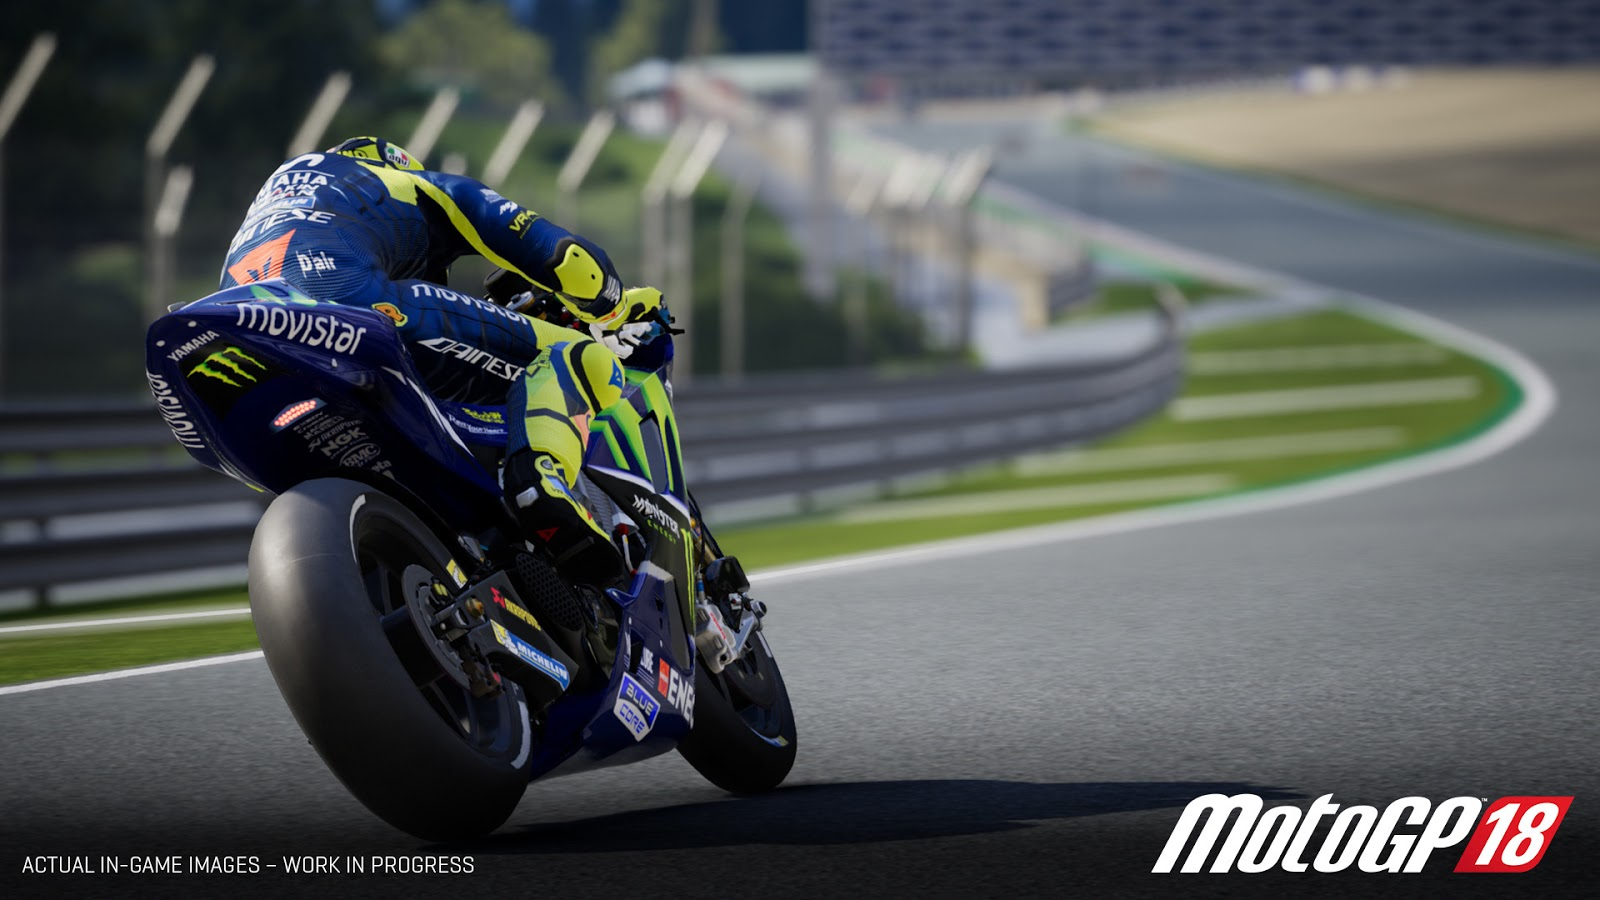 MotoGP 18 Crack Full Download